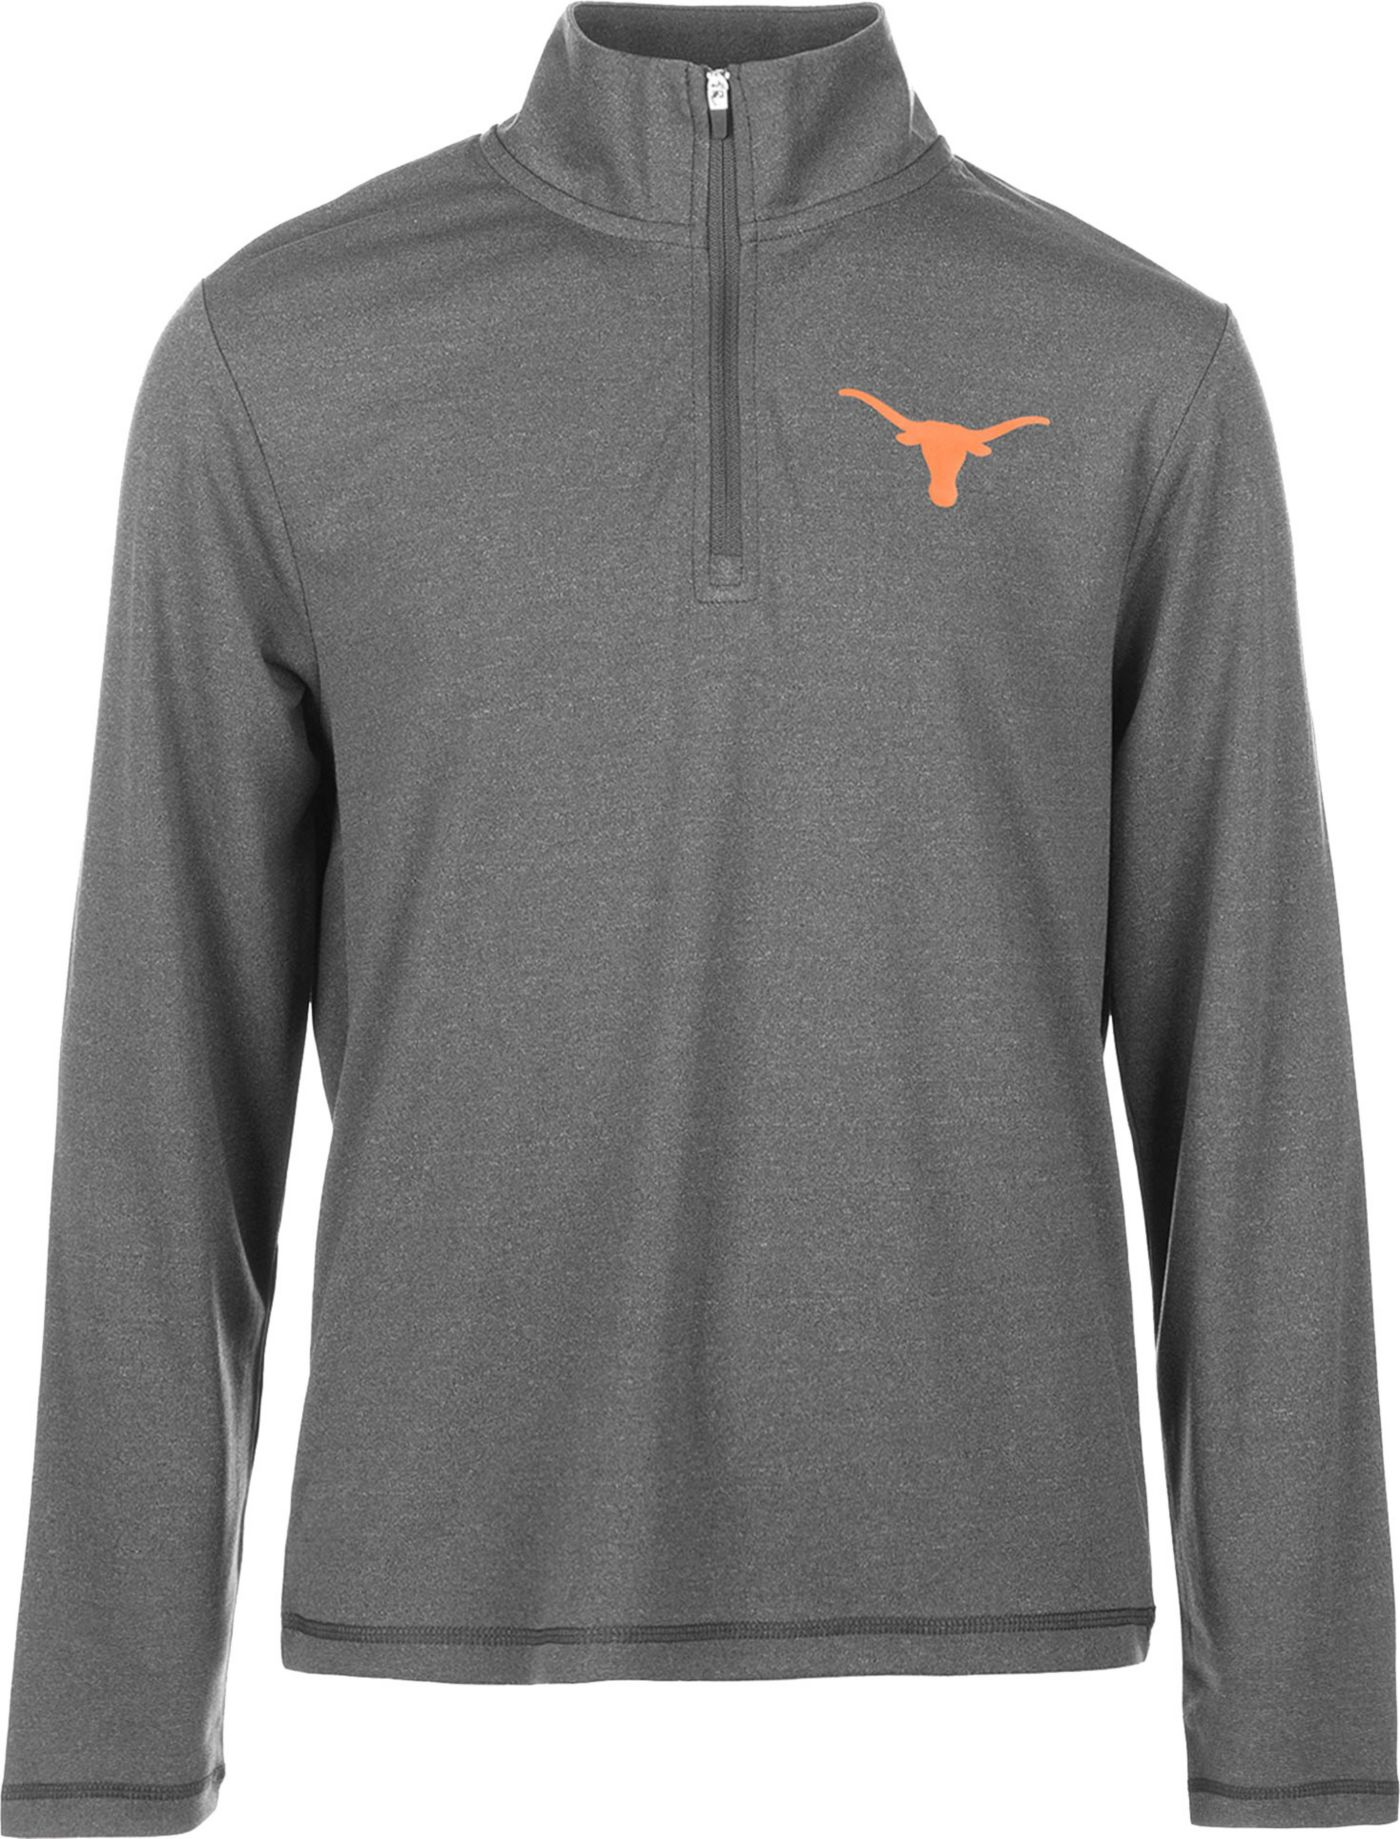 University of Texas Authentic Apparel Youth Texas Longhorns Grey Aries Quarter-Zip Top